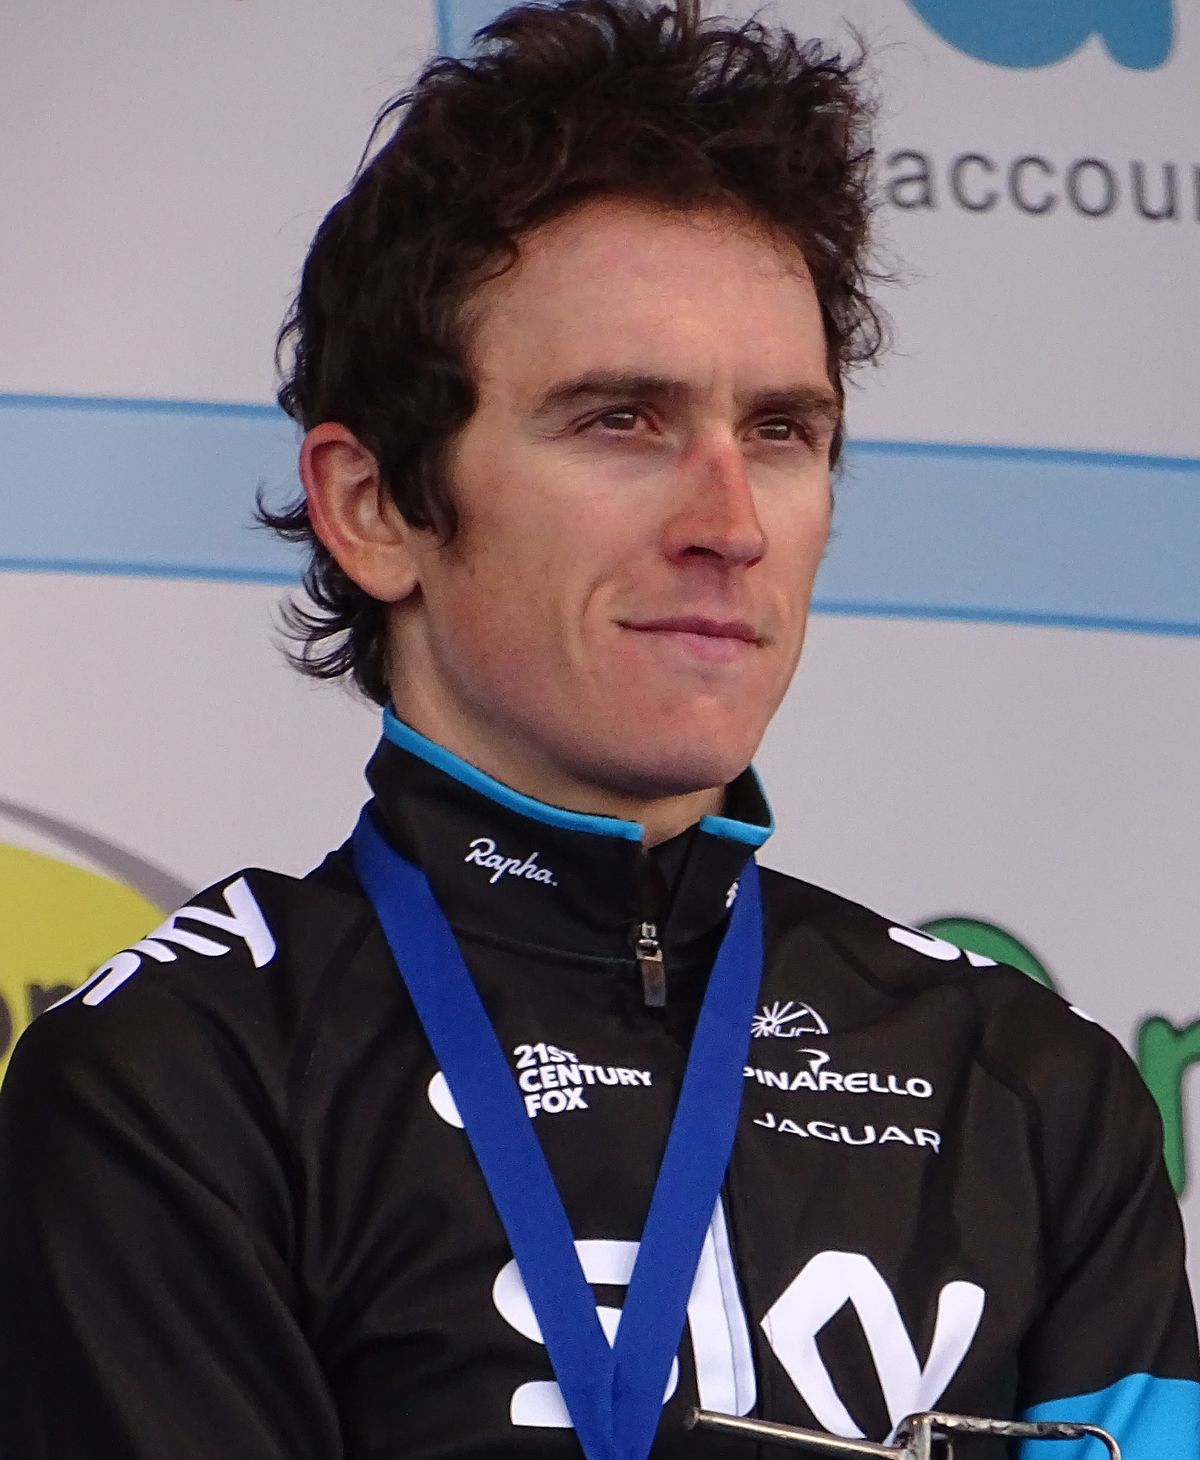 geraint thomas wikipedia la enciclopedia libre